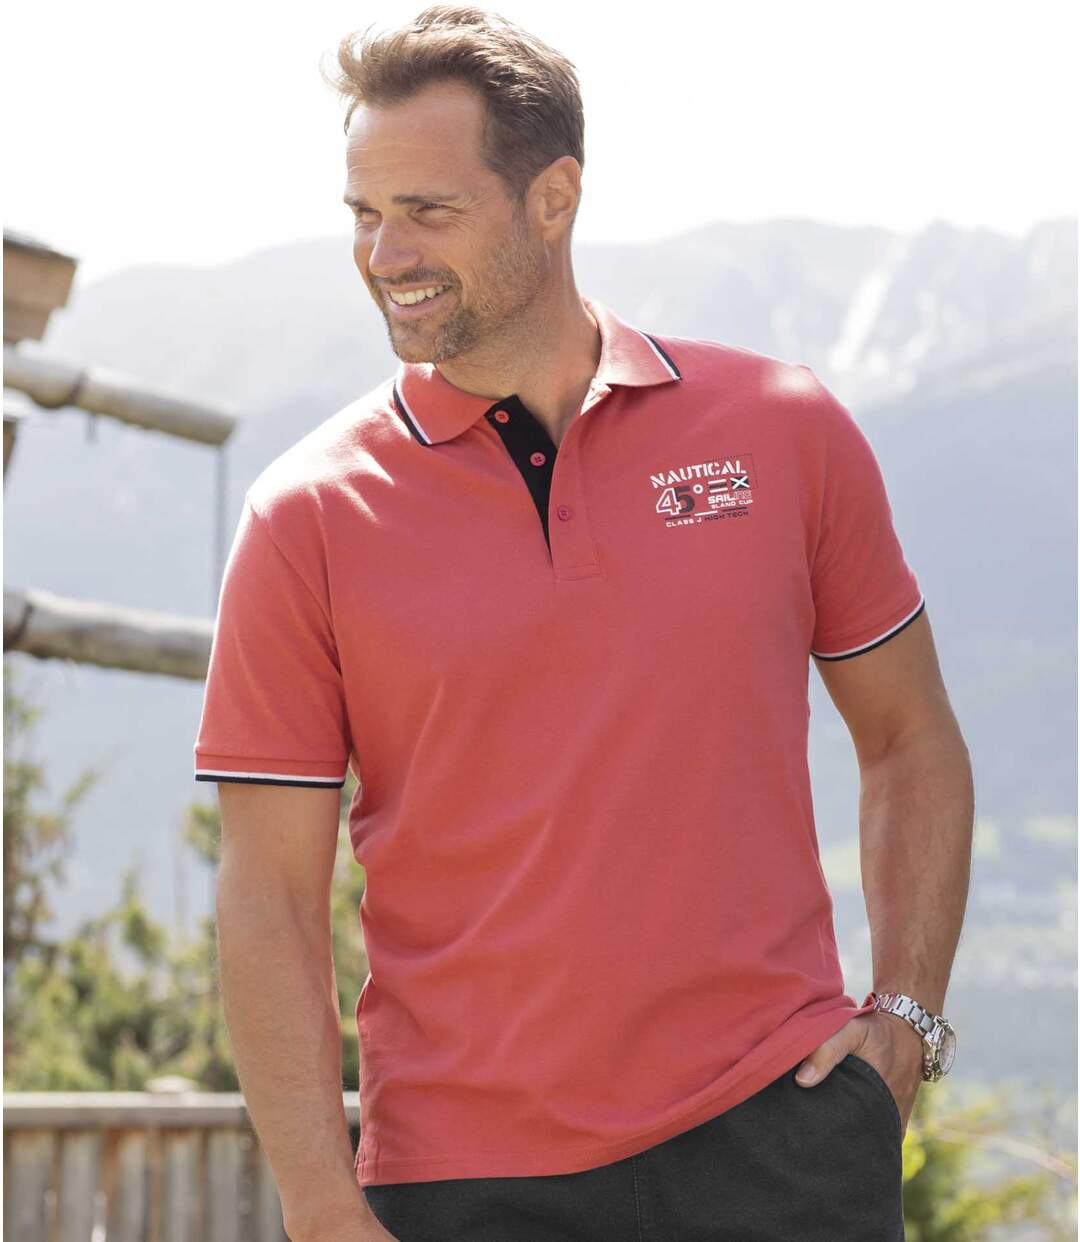 Pack of 2 Men's Nautical Polo Shirts - Coral Black Atlas For Men